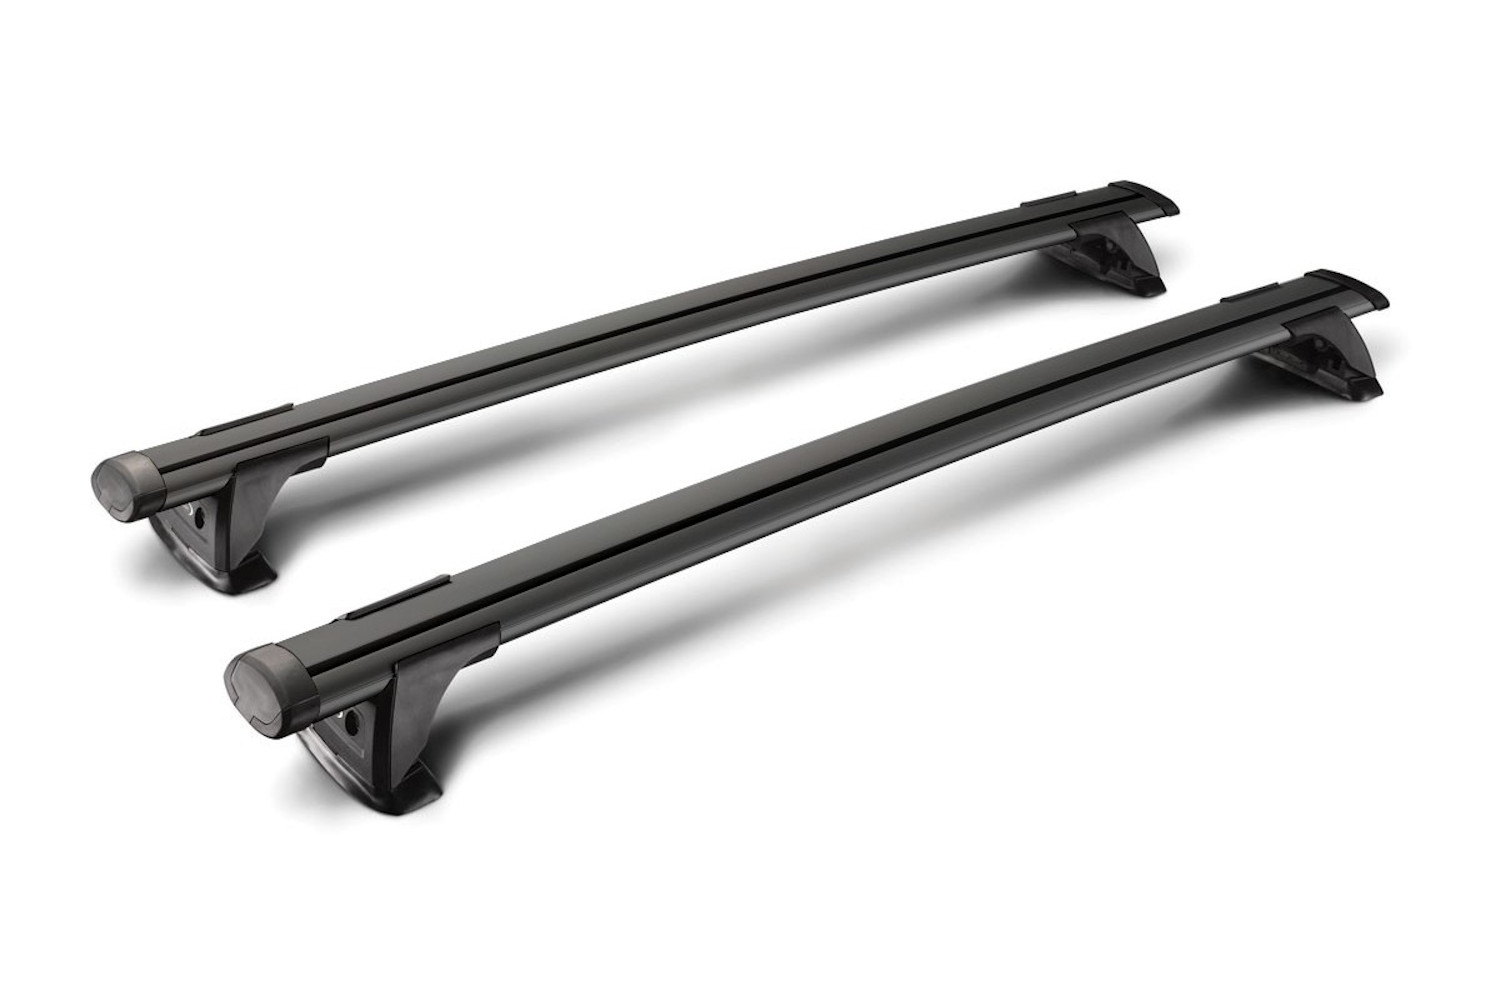 Dakdragers Subaru Impreza III 2007-2011 5-deurs hatchback Yakima Whispbar Through Bar zwart